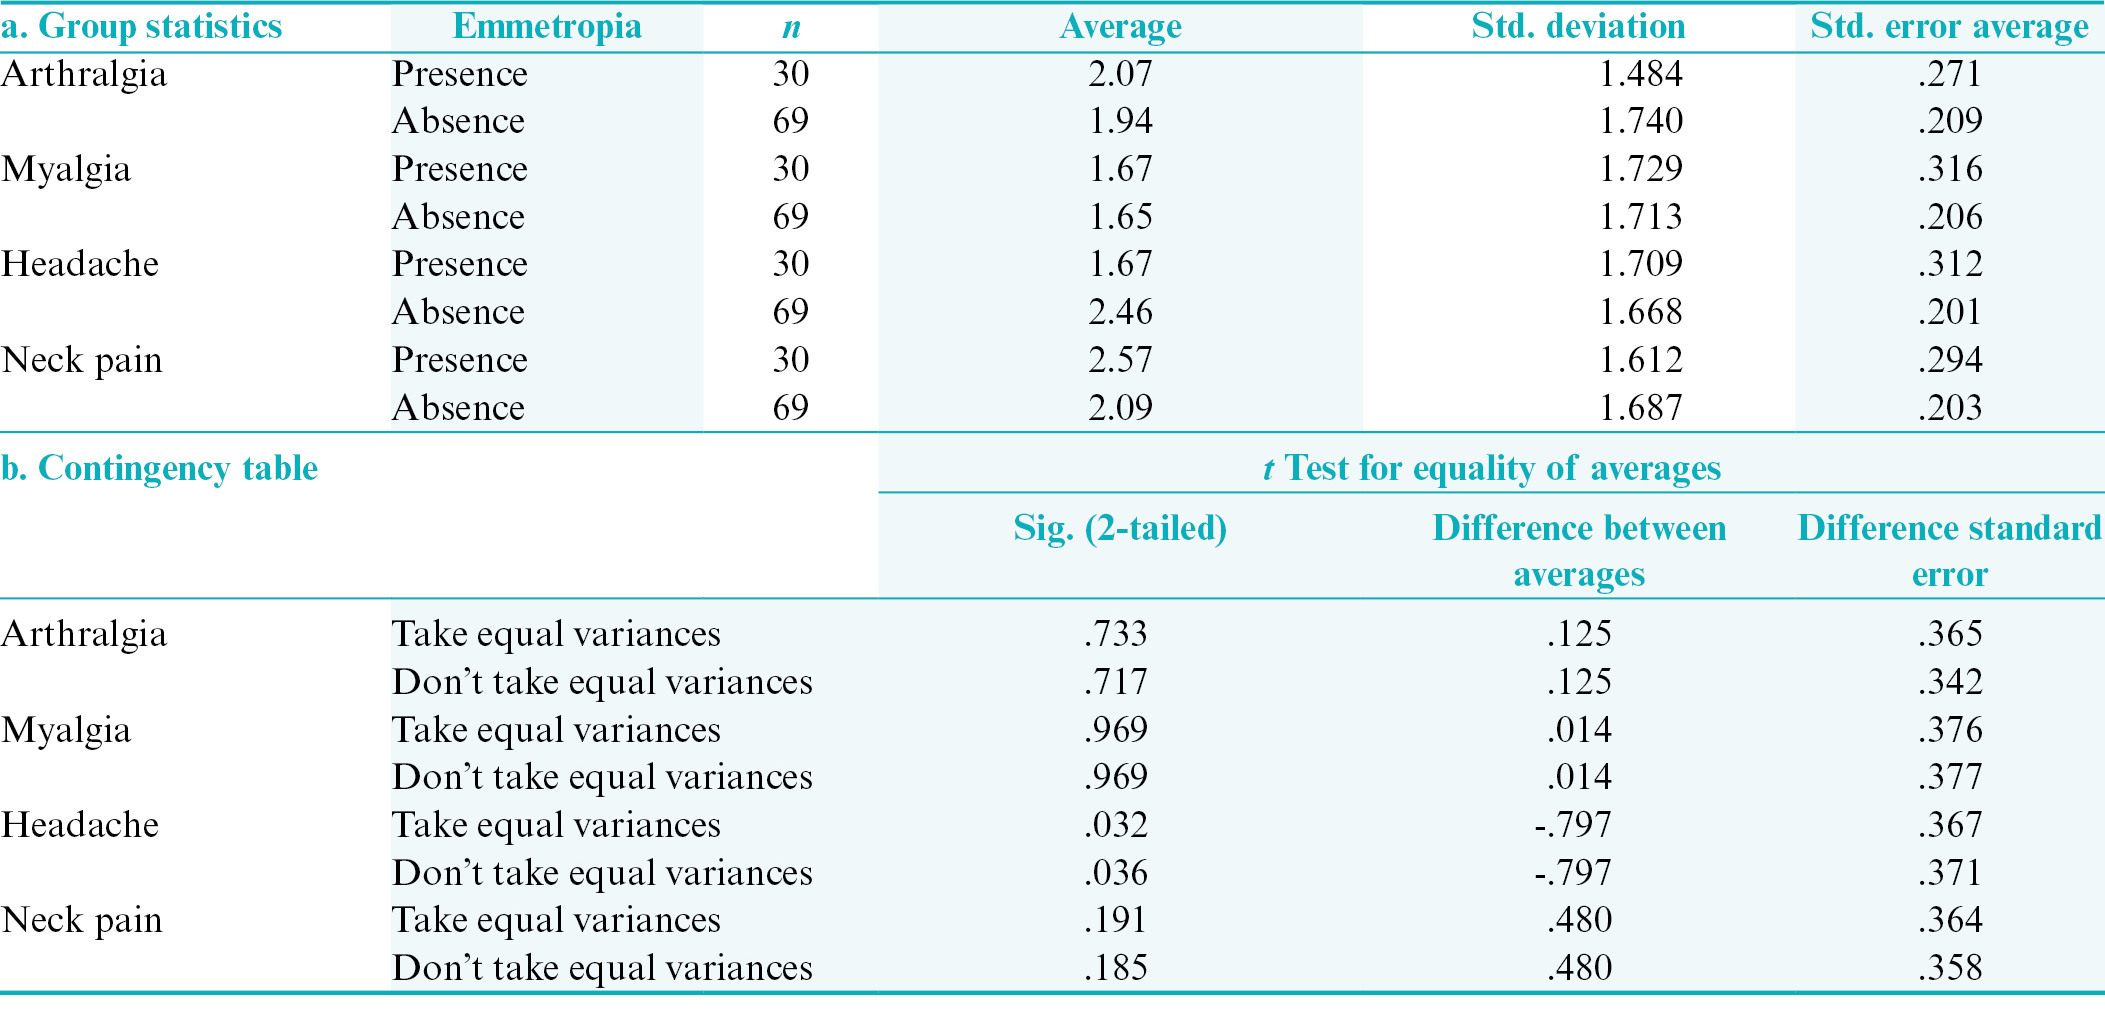 Table 4: Differences between the average values of gnathological algic symptoms and astigmatism. (a) Group statistics; (b) contingency table